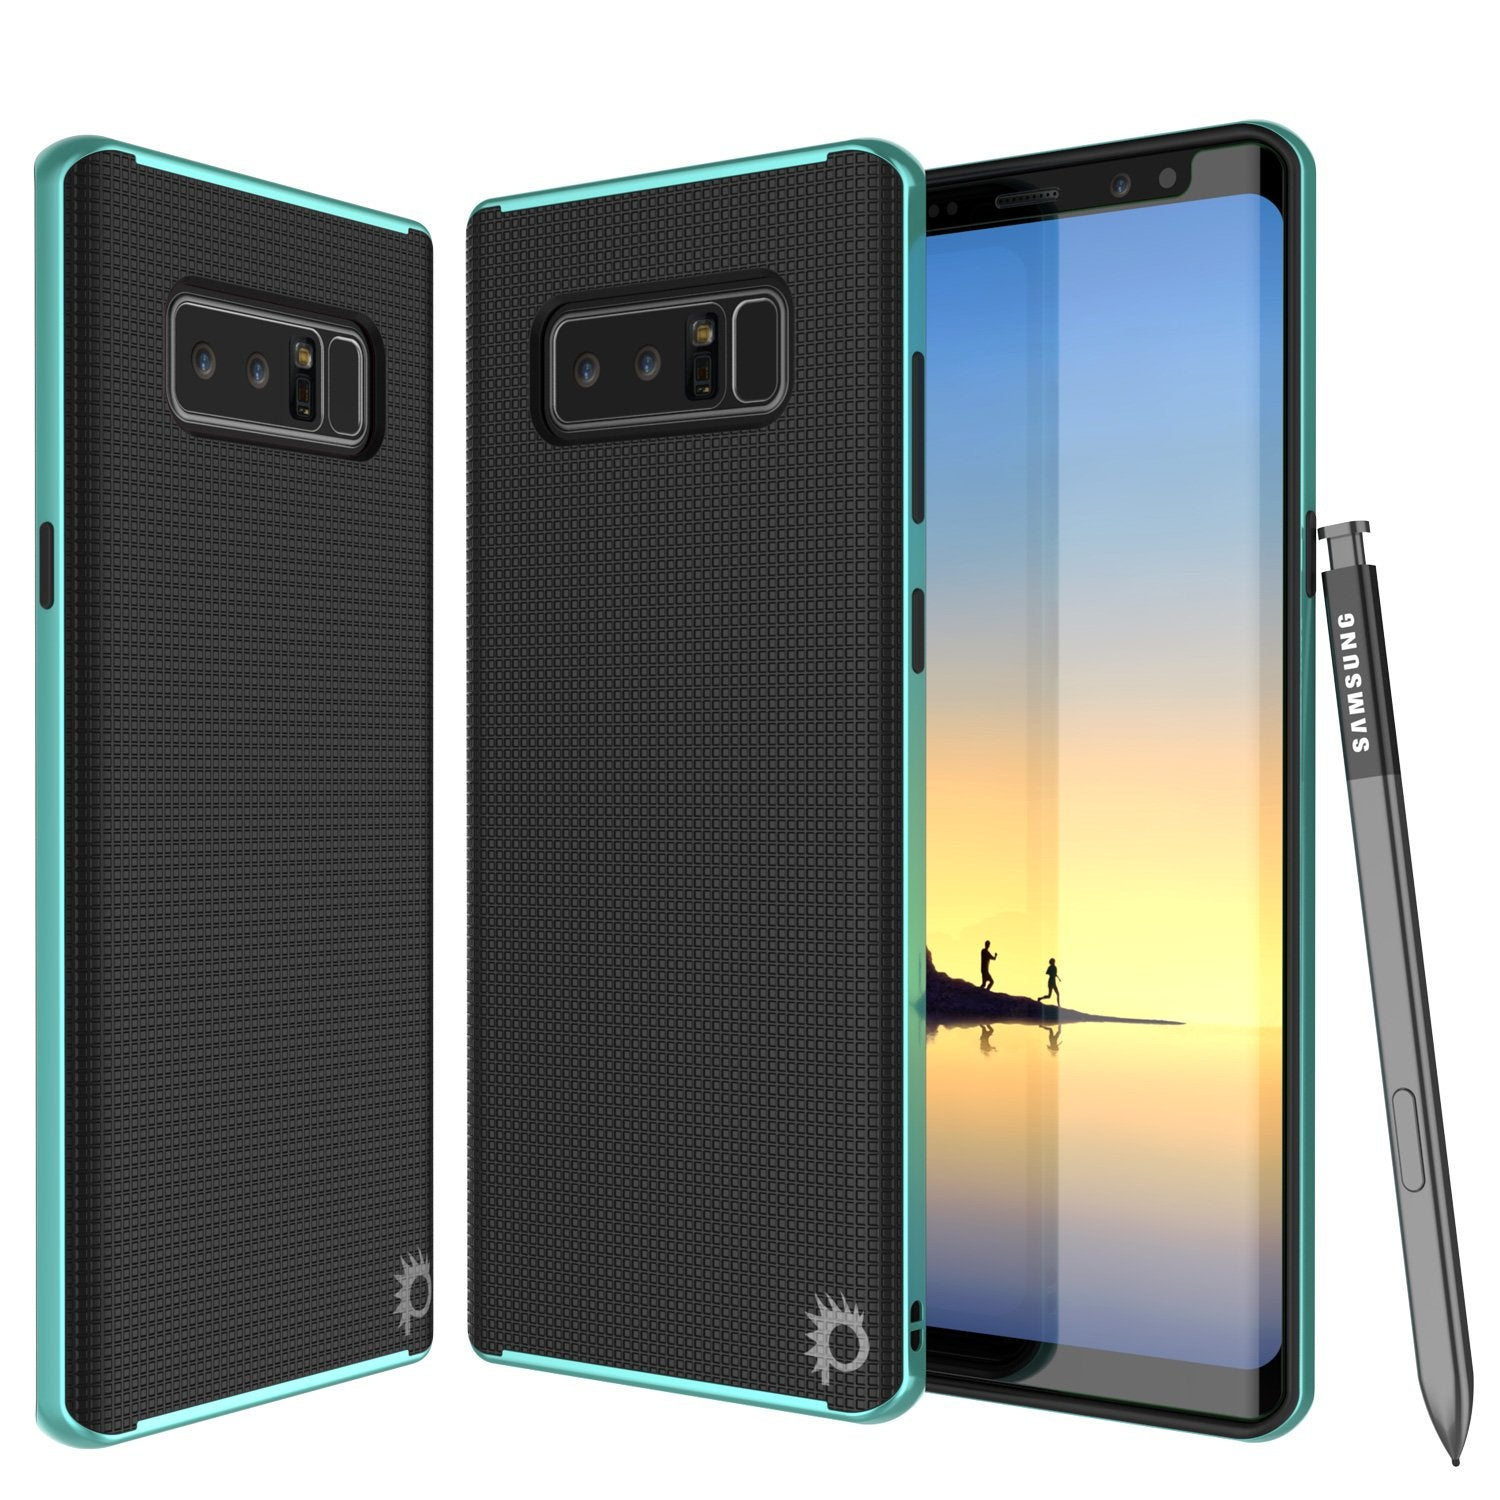 Galaxy Note 8 Case, PunkCase [Stealth Series] Hybrid 3-Piece Shockproof Dual Layer Cover [Non-Slip] [Soft TPU + PC Bumper] with PUNKSHIELD Screen Protector for Samsung Note 8 [Teal]